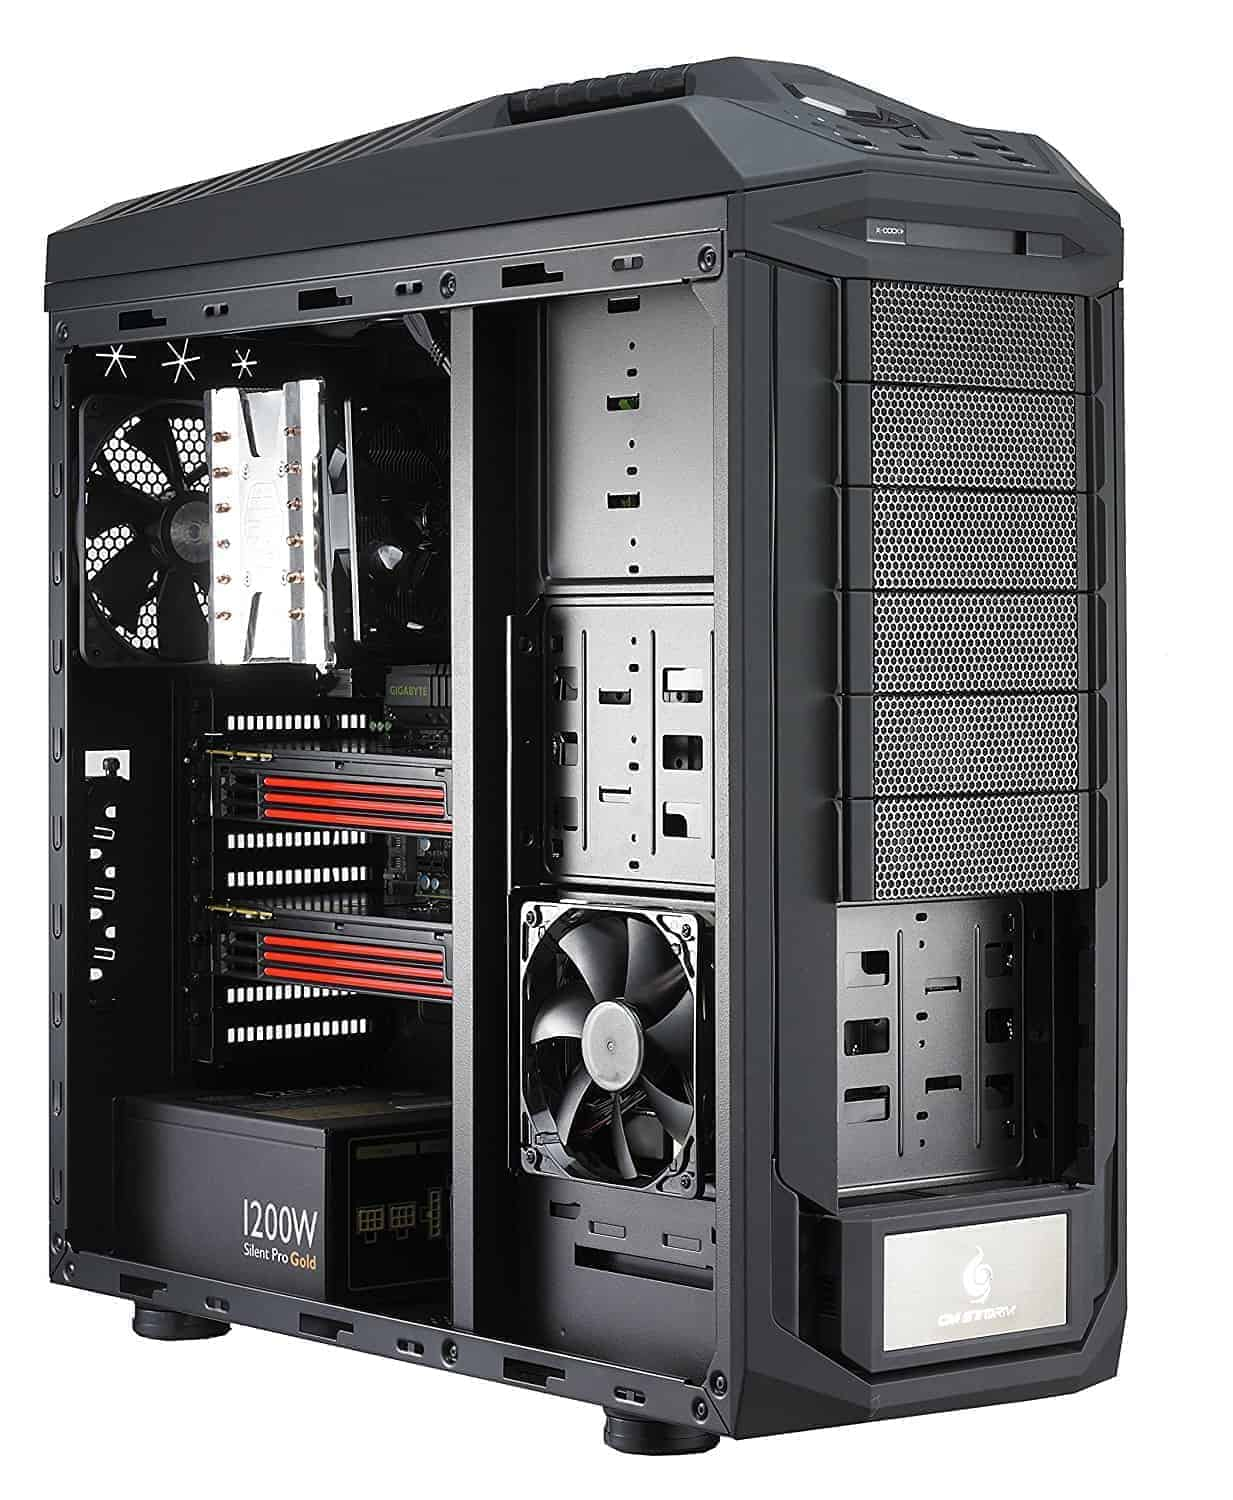 Cooler Master, Full Tower Case, PC, Cabinet, The Ultra Tower, COSMOS